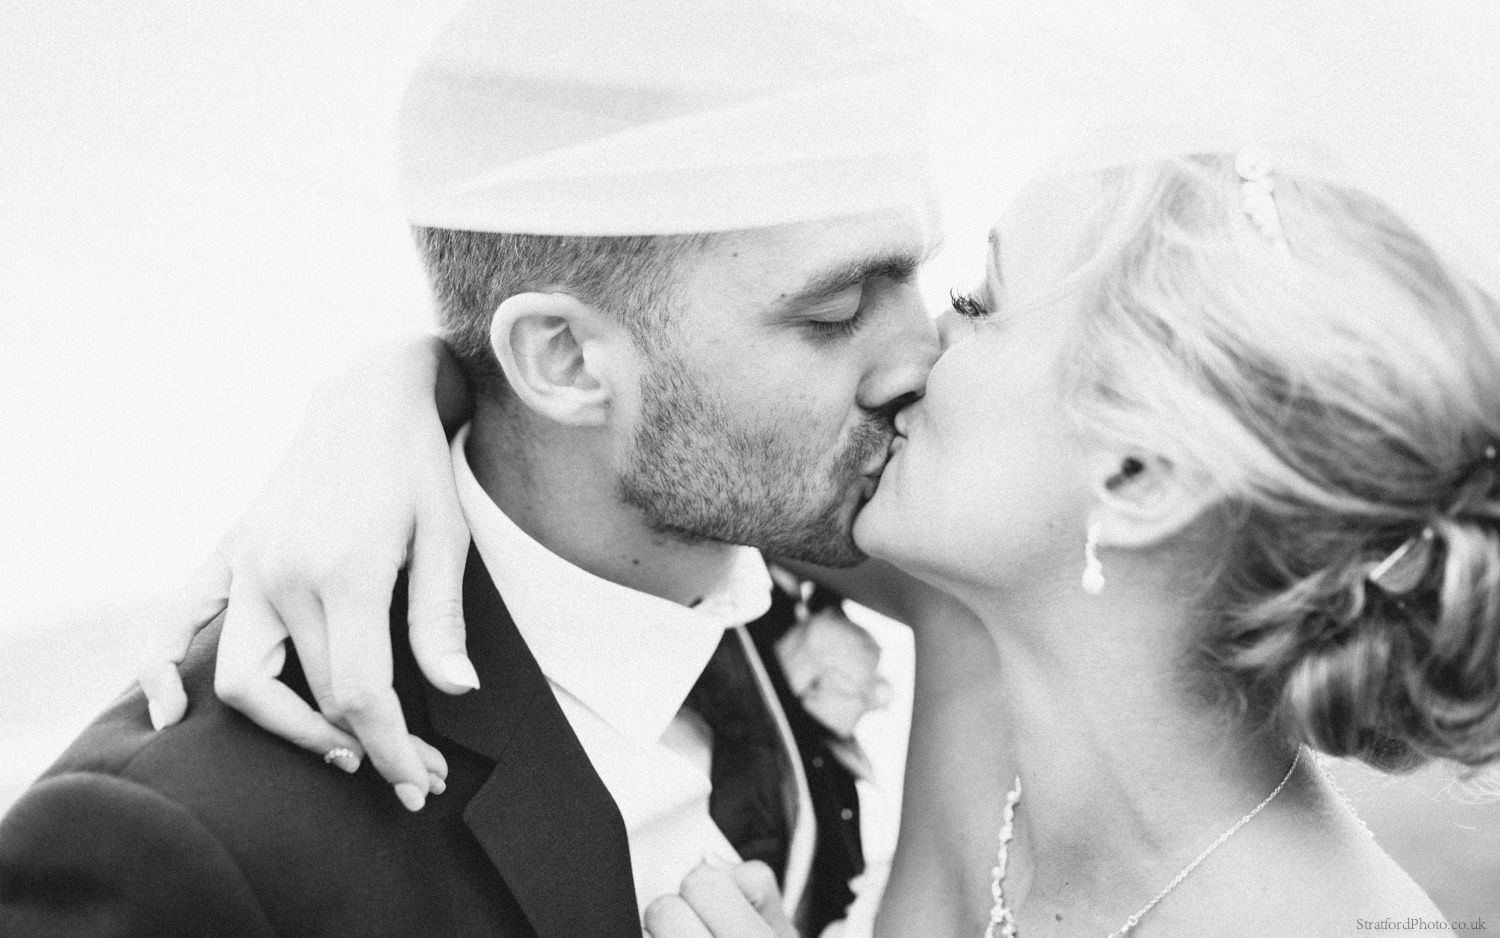 A bride and groom share a passionate kiss under her veil on their wedding day at Leasowe Castle Wirral